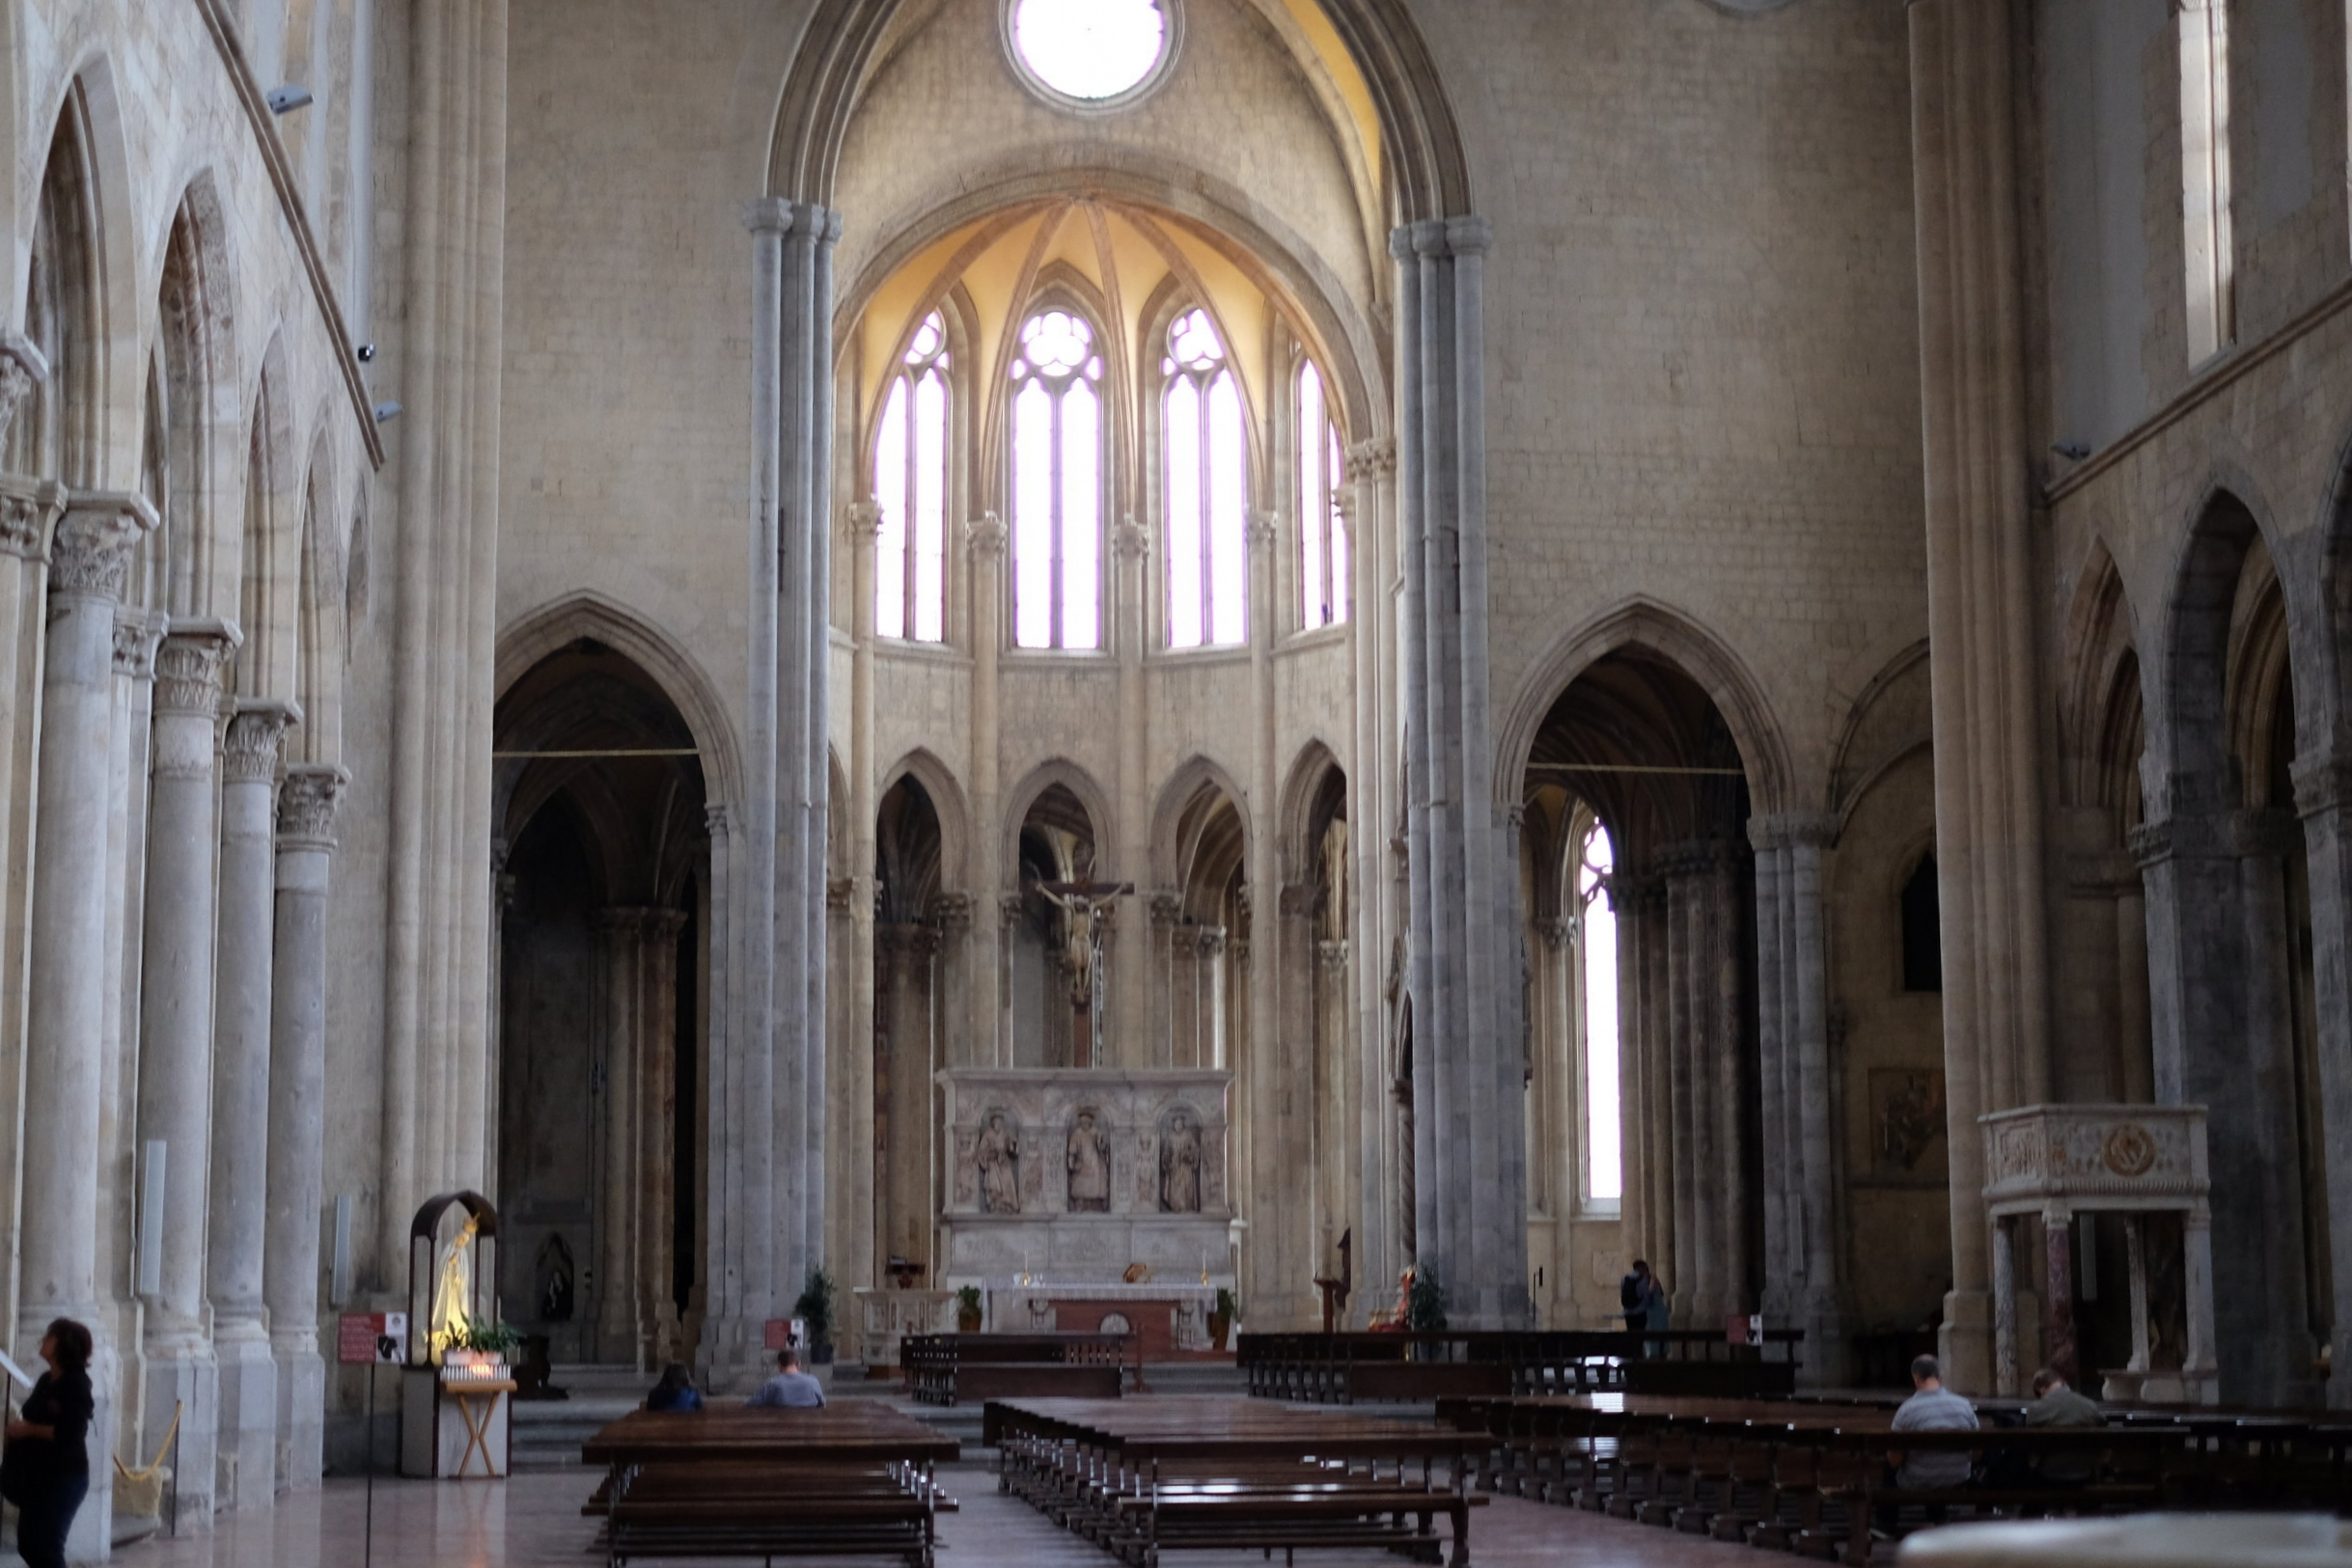 Gothic interior of the church.